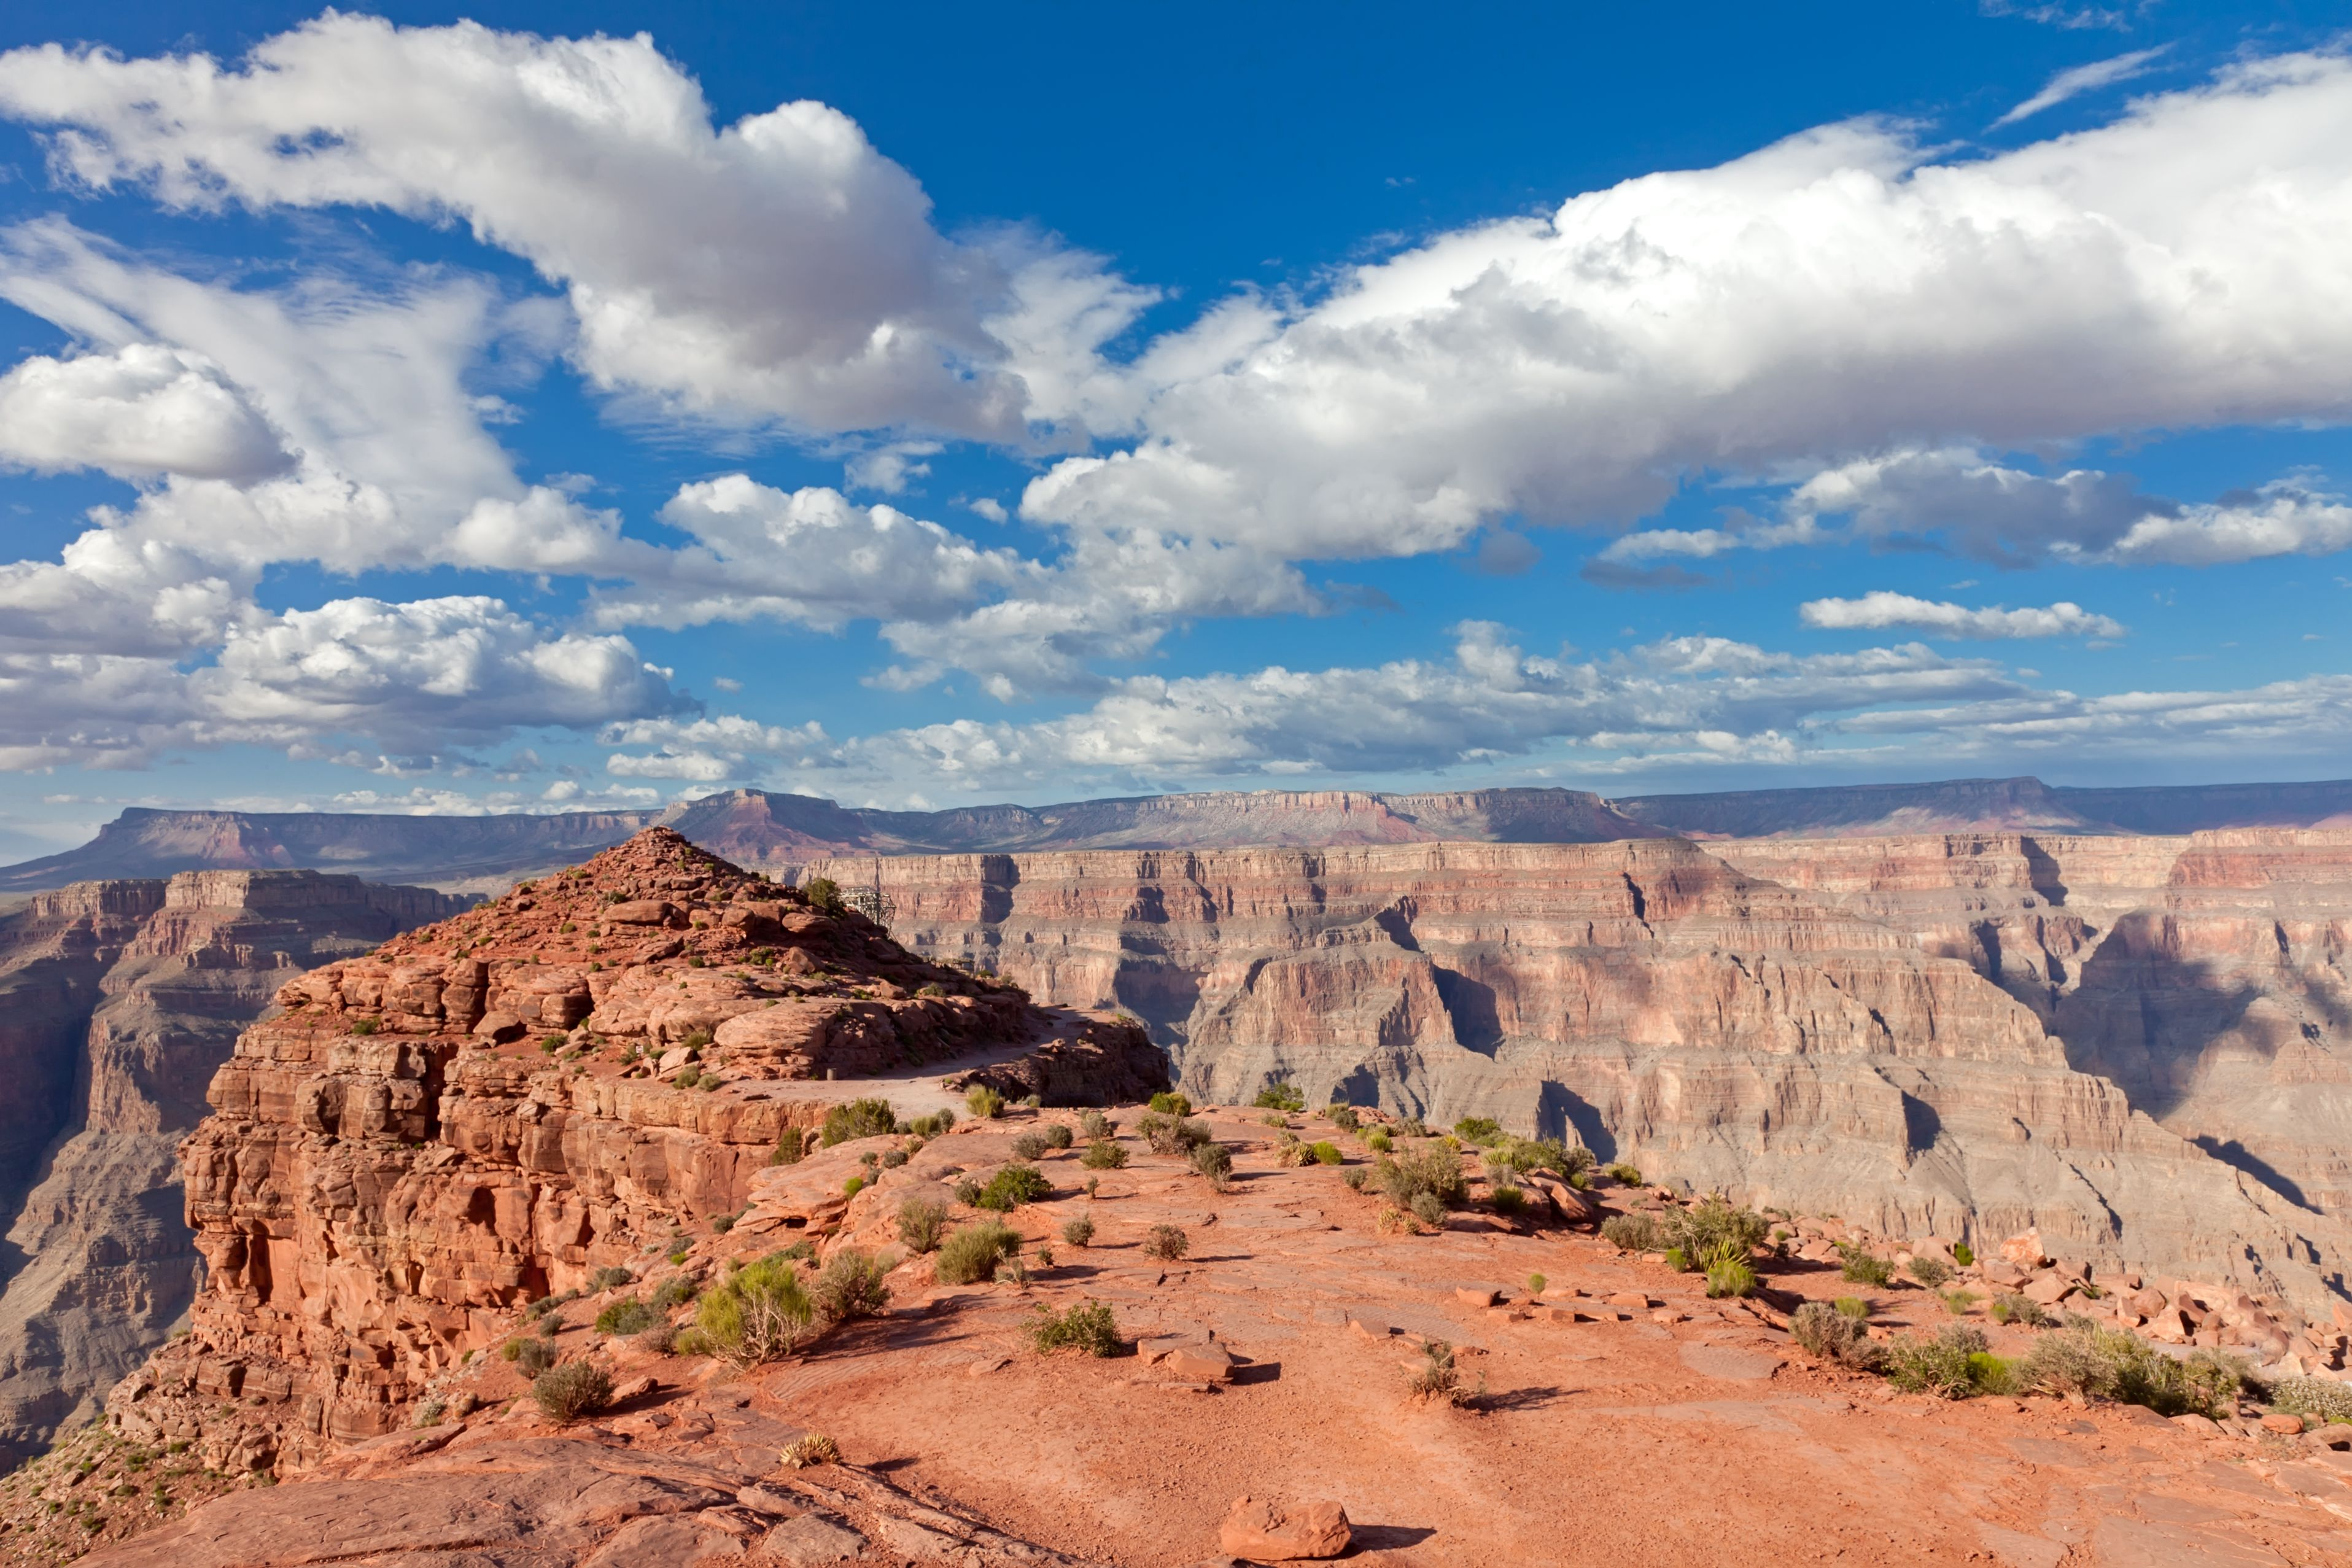 best helicopter tour las vegas to grand canyon with Grand Canyon West Rim Indian Adventure Helicopter Tour on Grand Canyon Skywalk Bridge further Fantasy further Findeverythingvegas additionally Grand Canyon as well The Grand Canyon In United States.